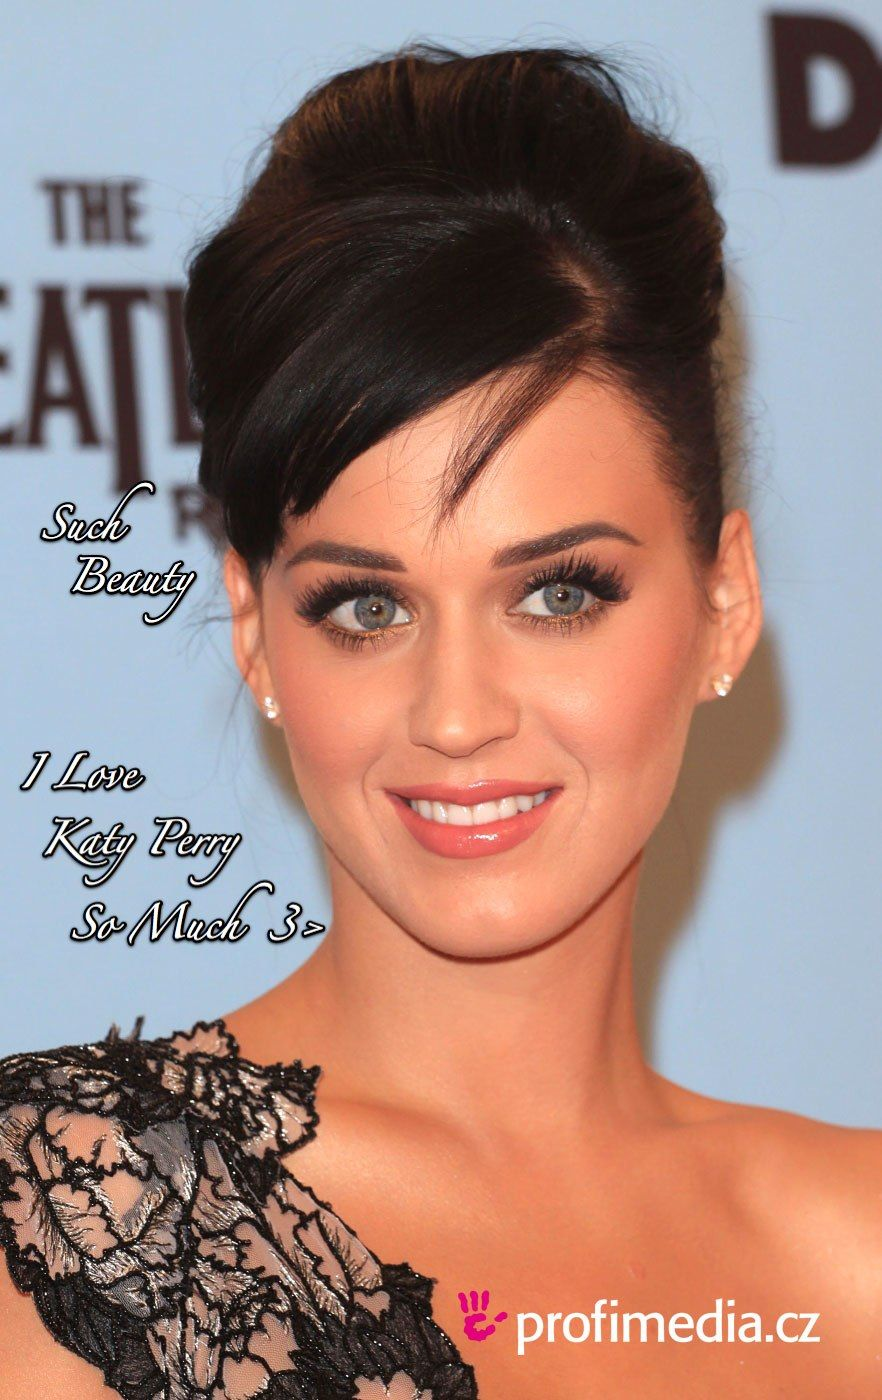 katy pery Katy Perry Katy Perry Photo (31965364